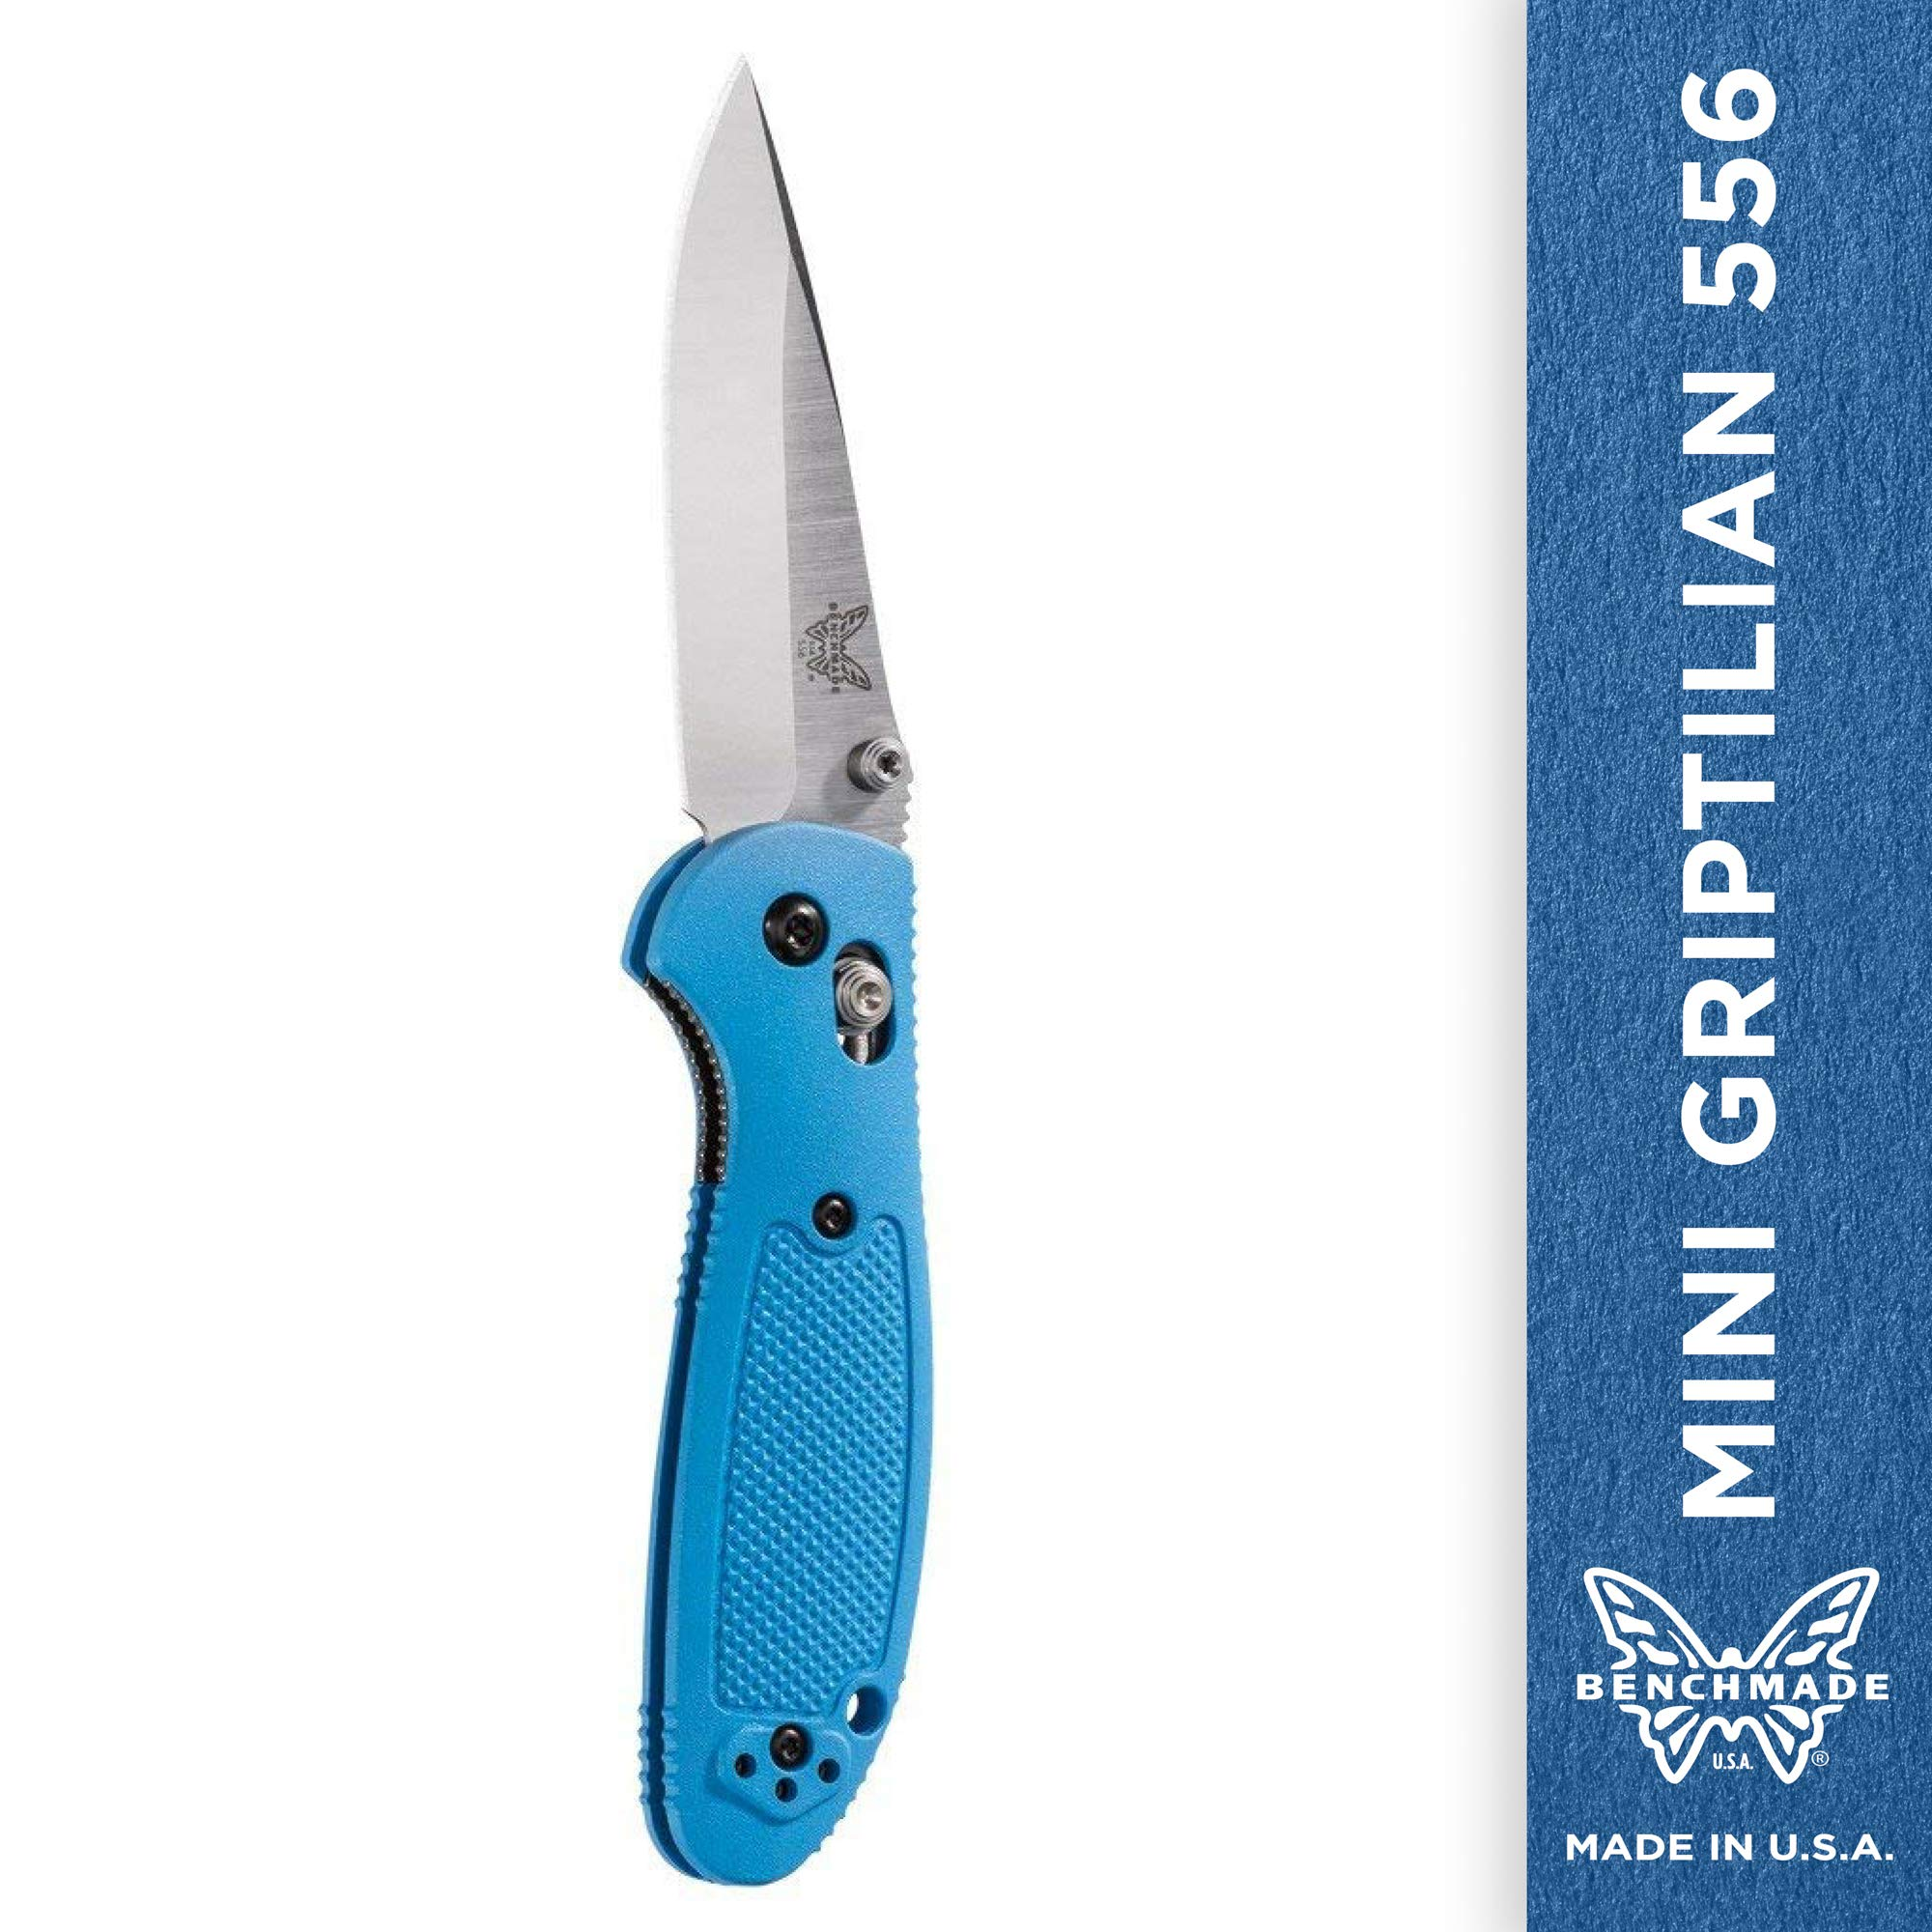 Benchmade - Mini Griptilian 556 EDC Manual Open Folding Knife Made in USA with CPM-S30V Steel, Drop-Point Blade, Plain Edge, Satin Finish, Blue Handle by Benchmade